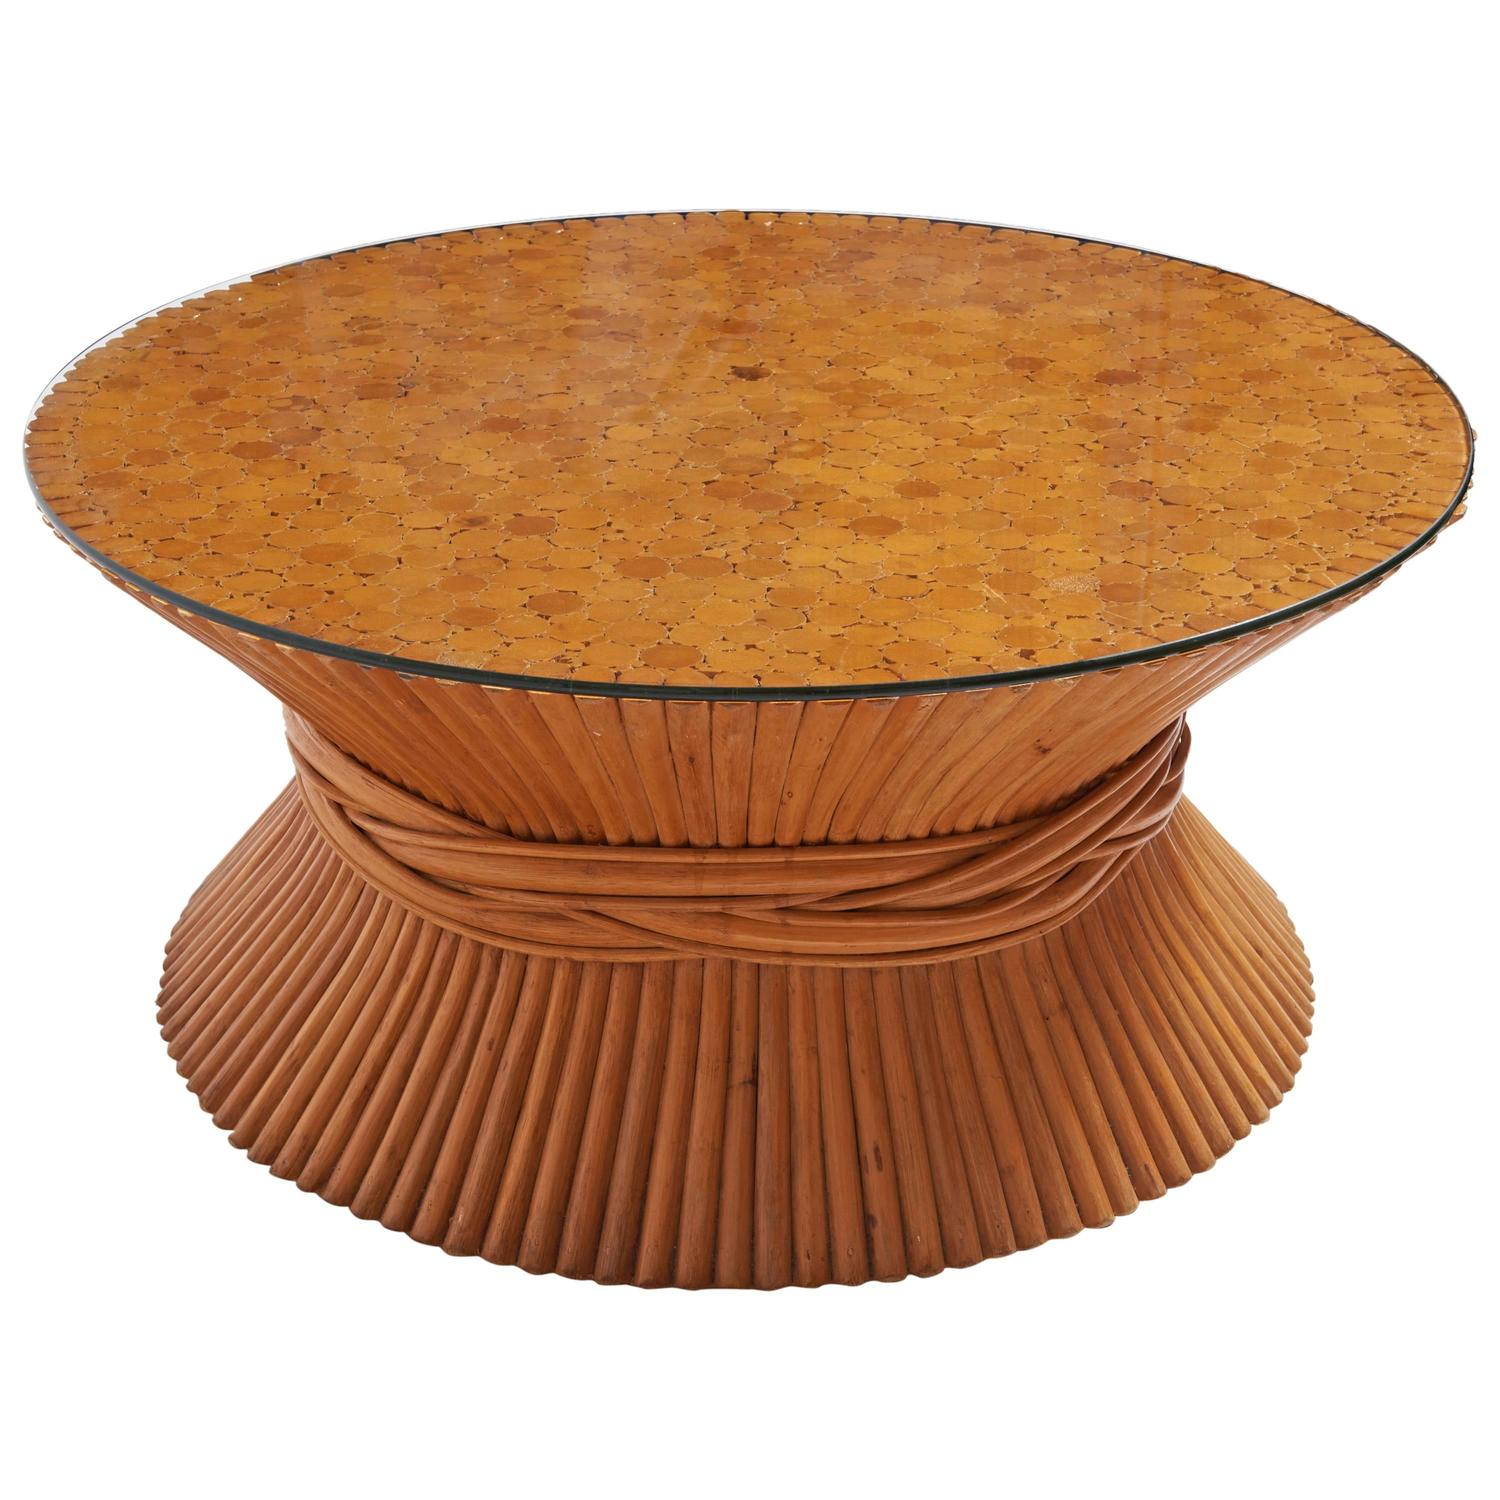 McGuire Wheat Sheaf Bamboo Rattan Coffee Table at 1stdibs